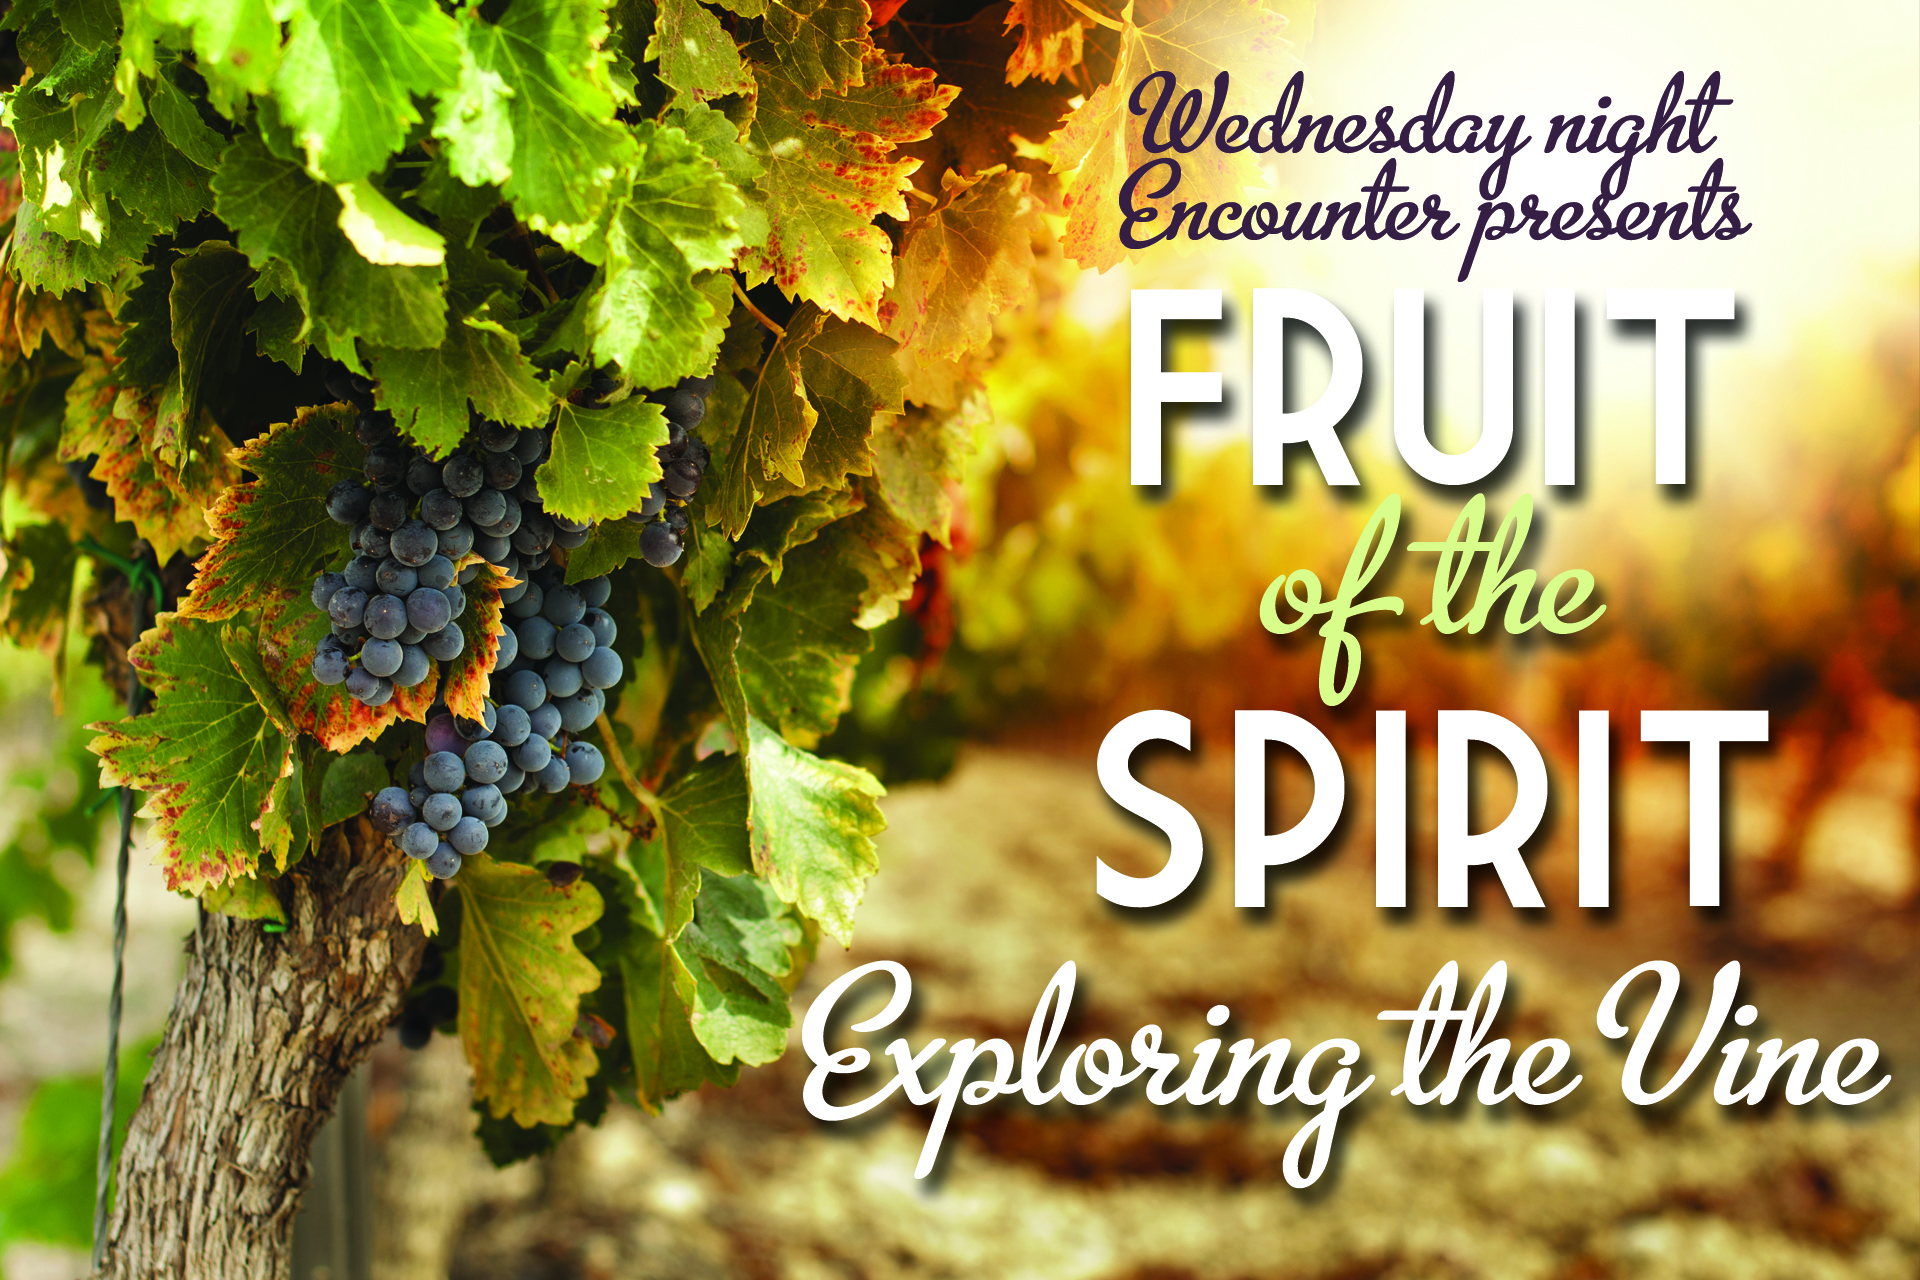 The Fruit of the Holy Spirit - Gary Hopkins